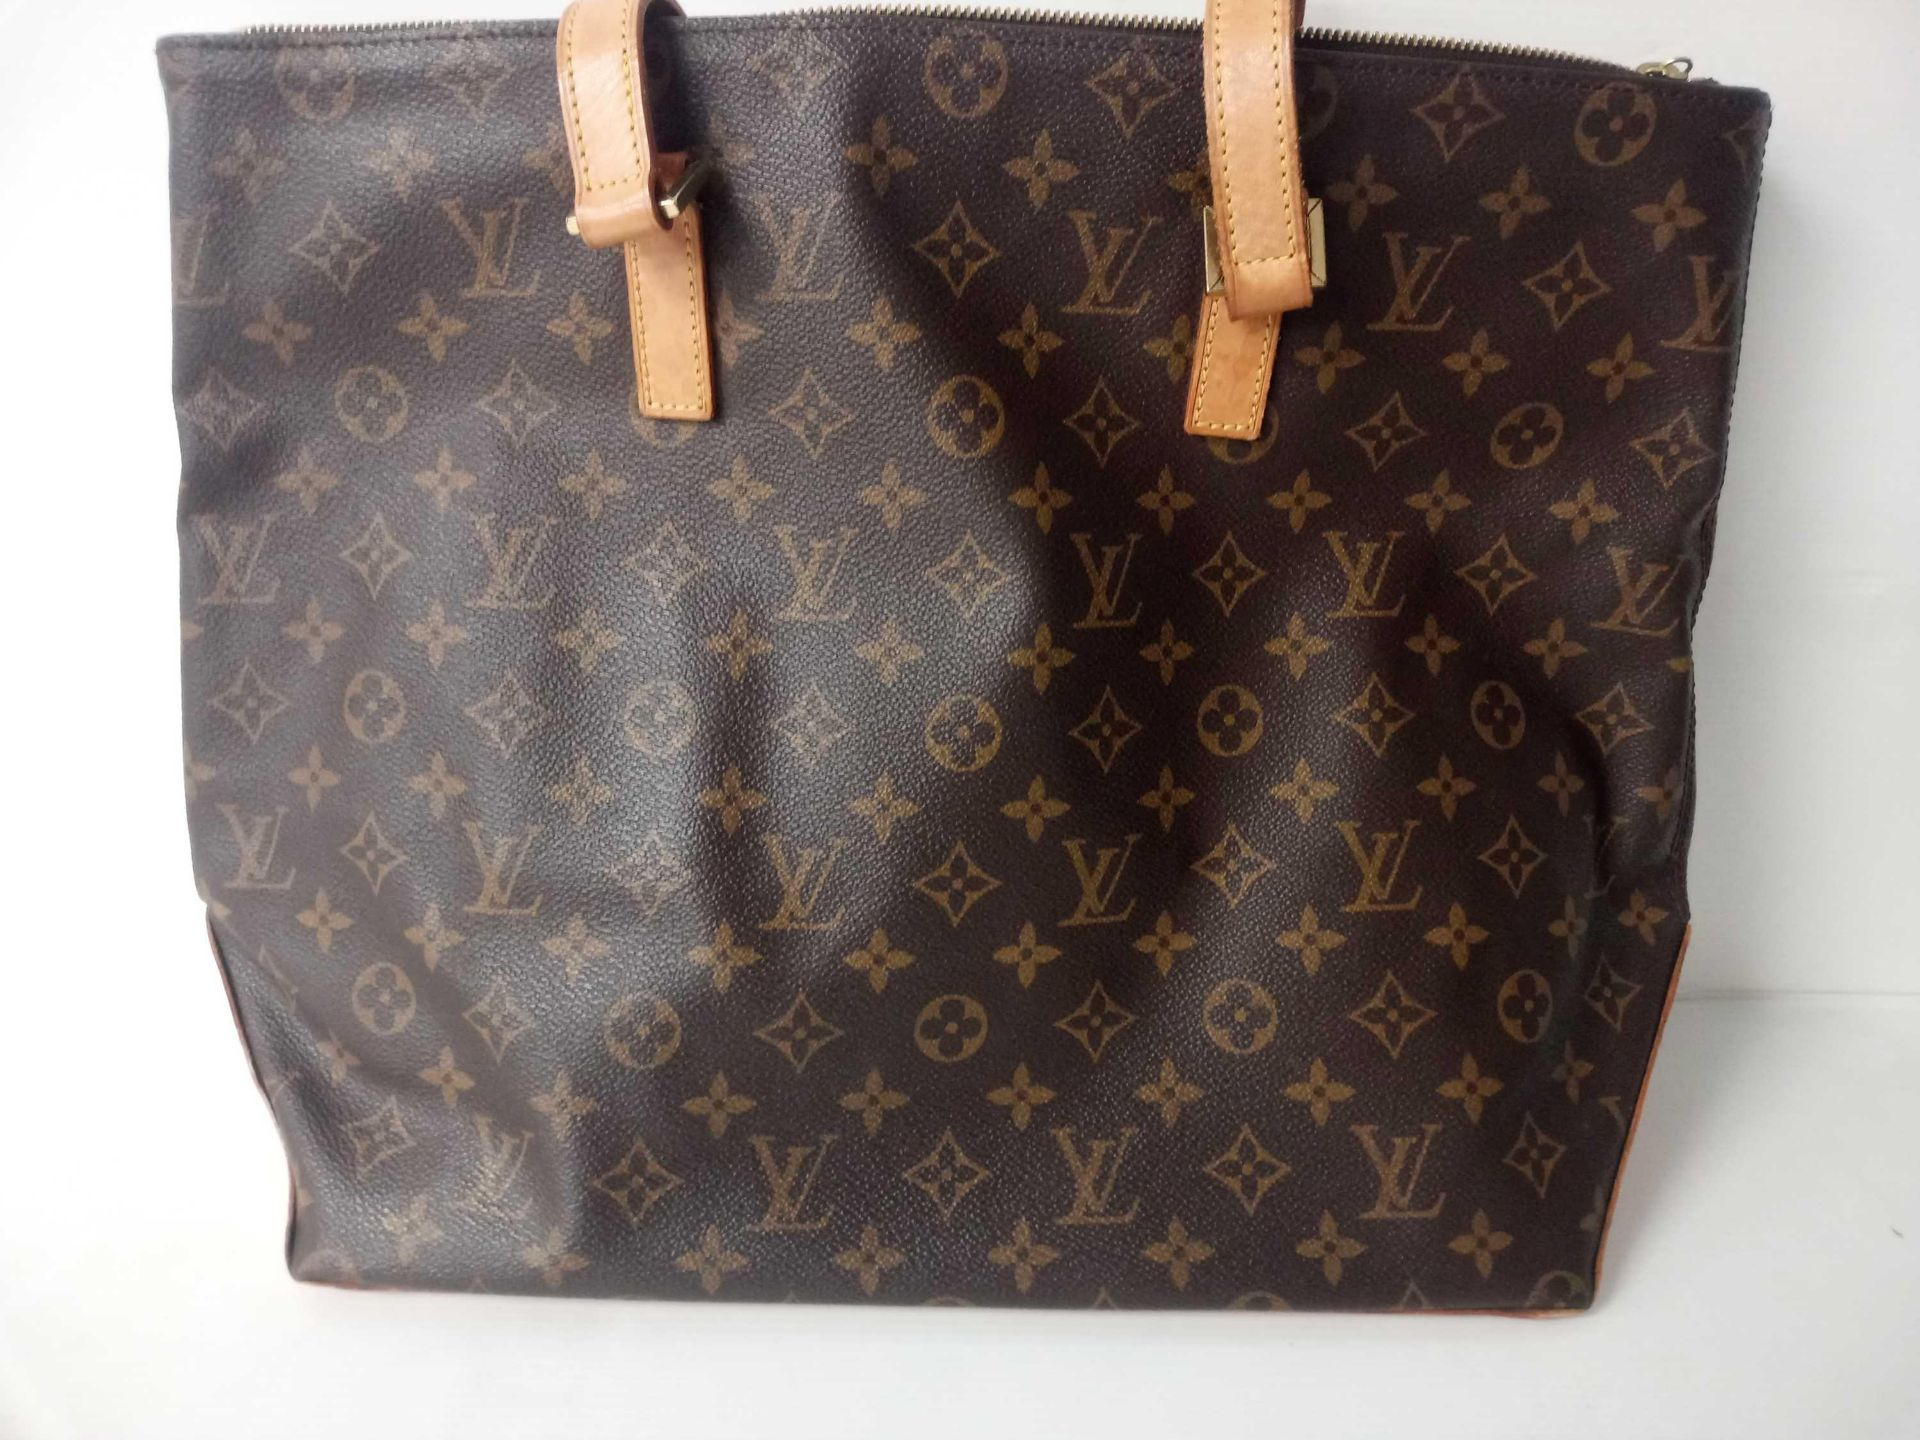 RRP £1020 Louis Vuitton Neverful Monogram Vuitton Leather Shoulder Bag (Appraisals Available On - Image 2 of 2